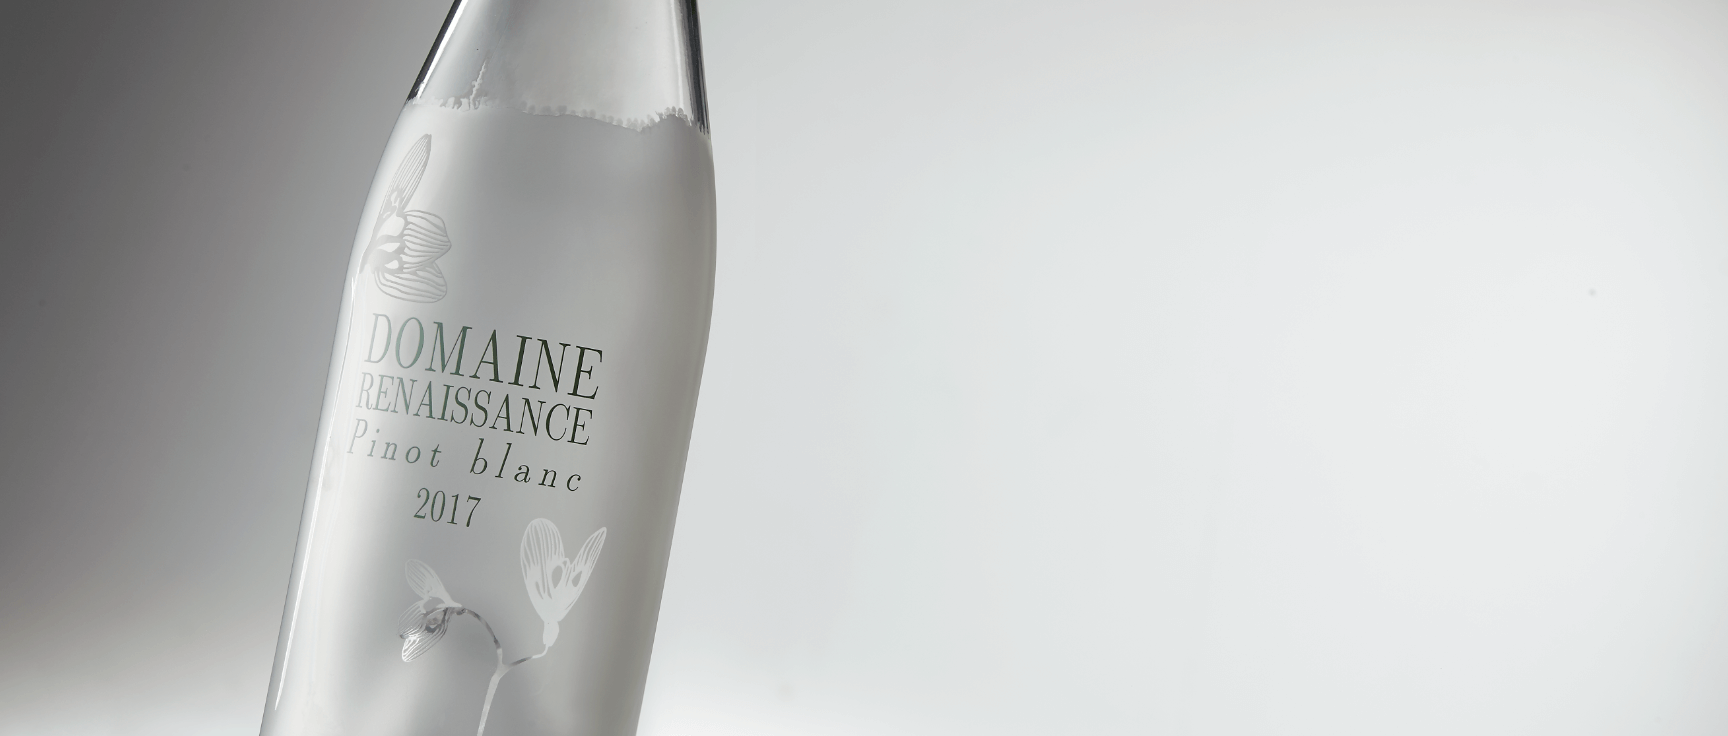 Acid Etching - Décor Techniques for premium glass bottle by Selective Line